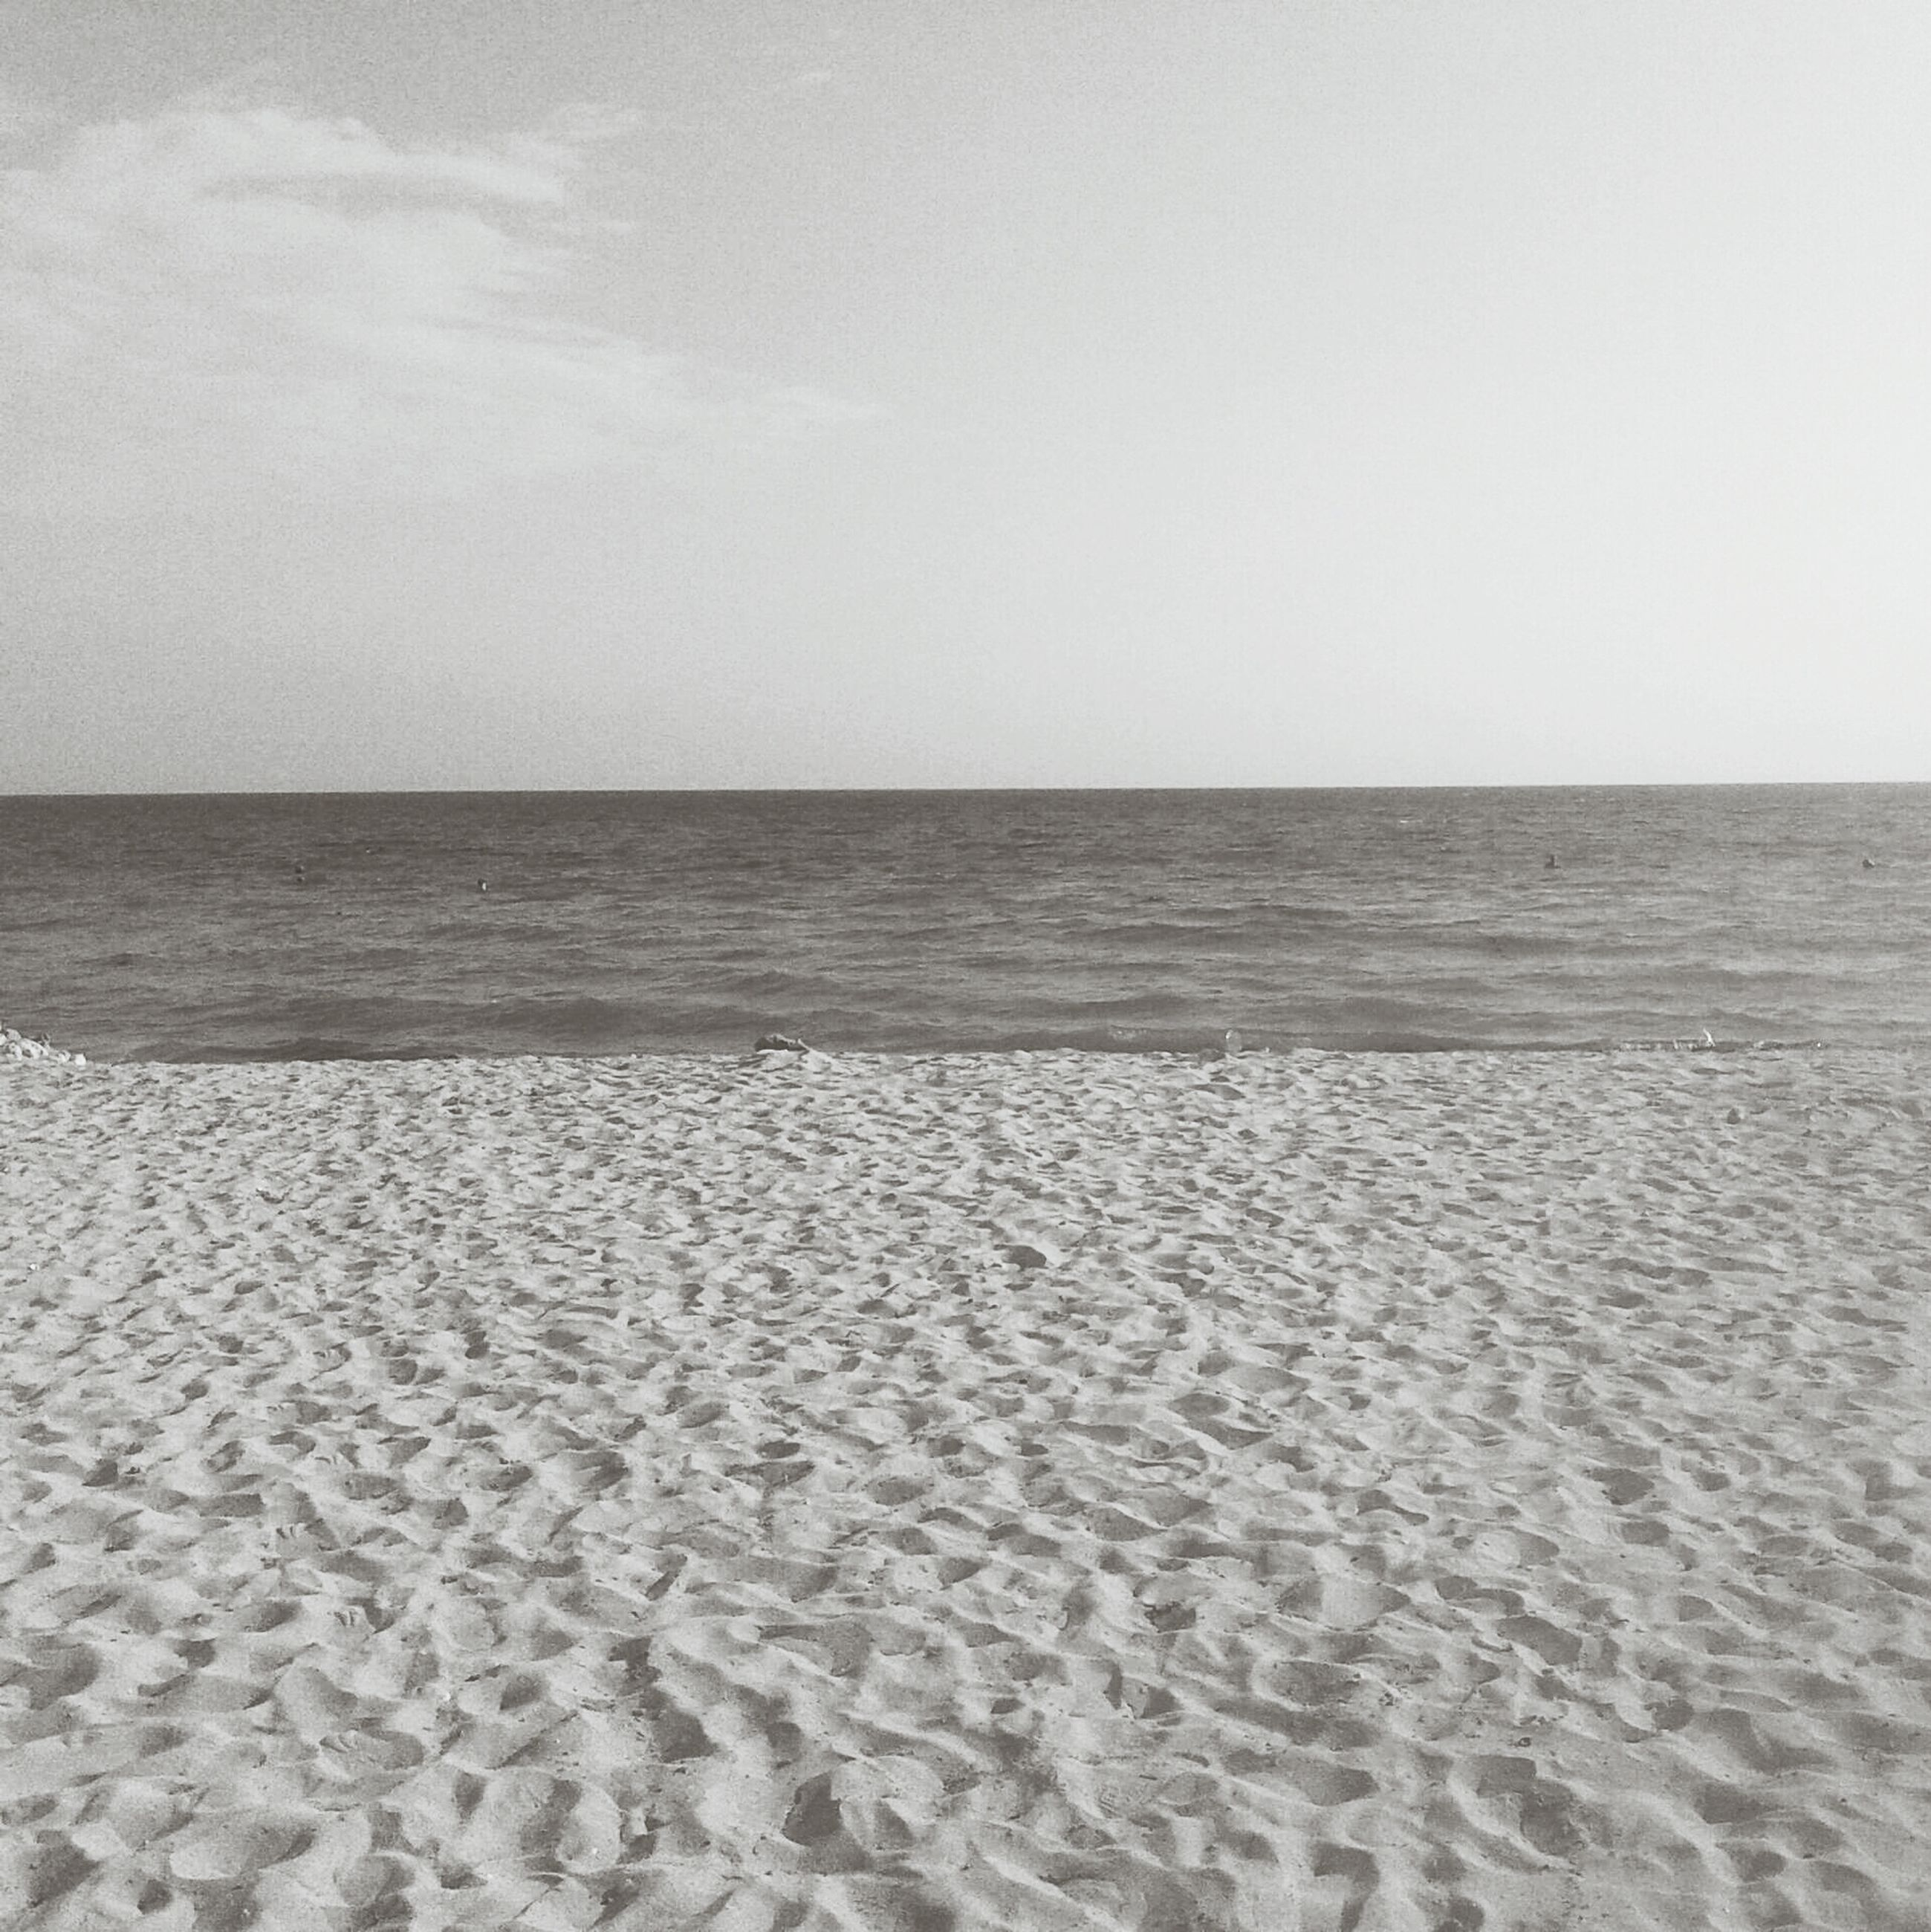 sea, horizon over water, tranquil scene, beach, tranquility, scenics, beauty in nature, sand, water, nature, sky, copy space, shore, clear sky, idyllic, remote, day, seascape, outdoors, no people